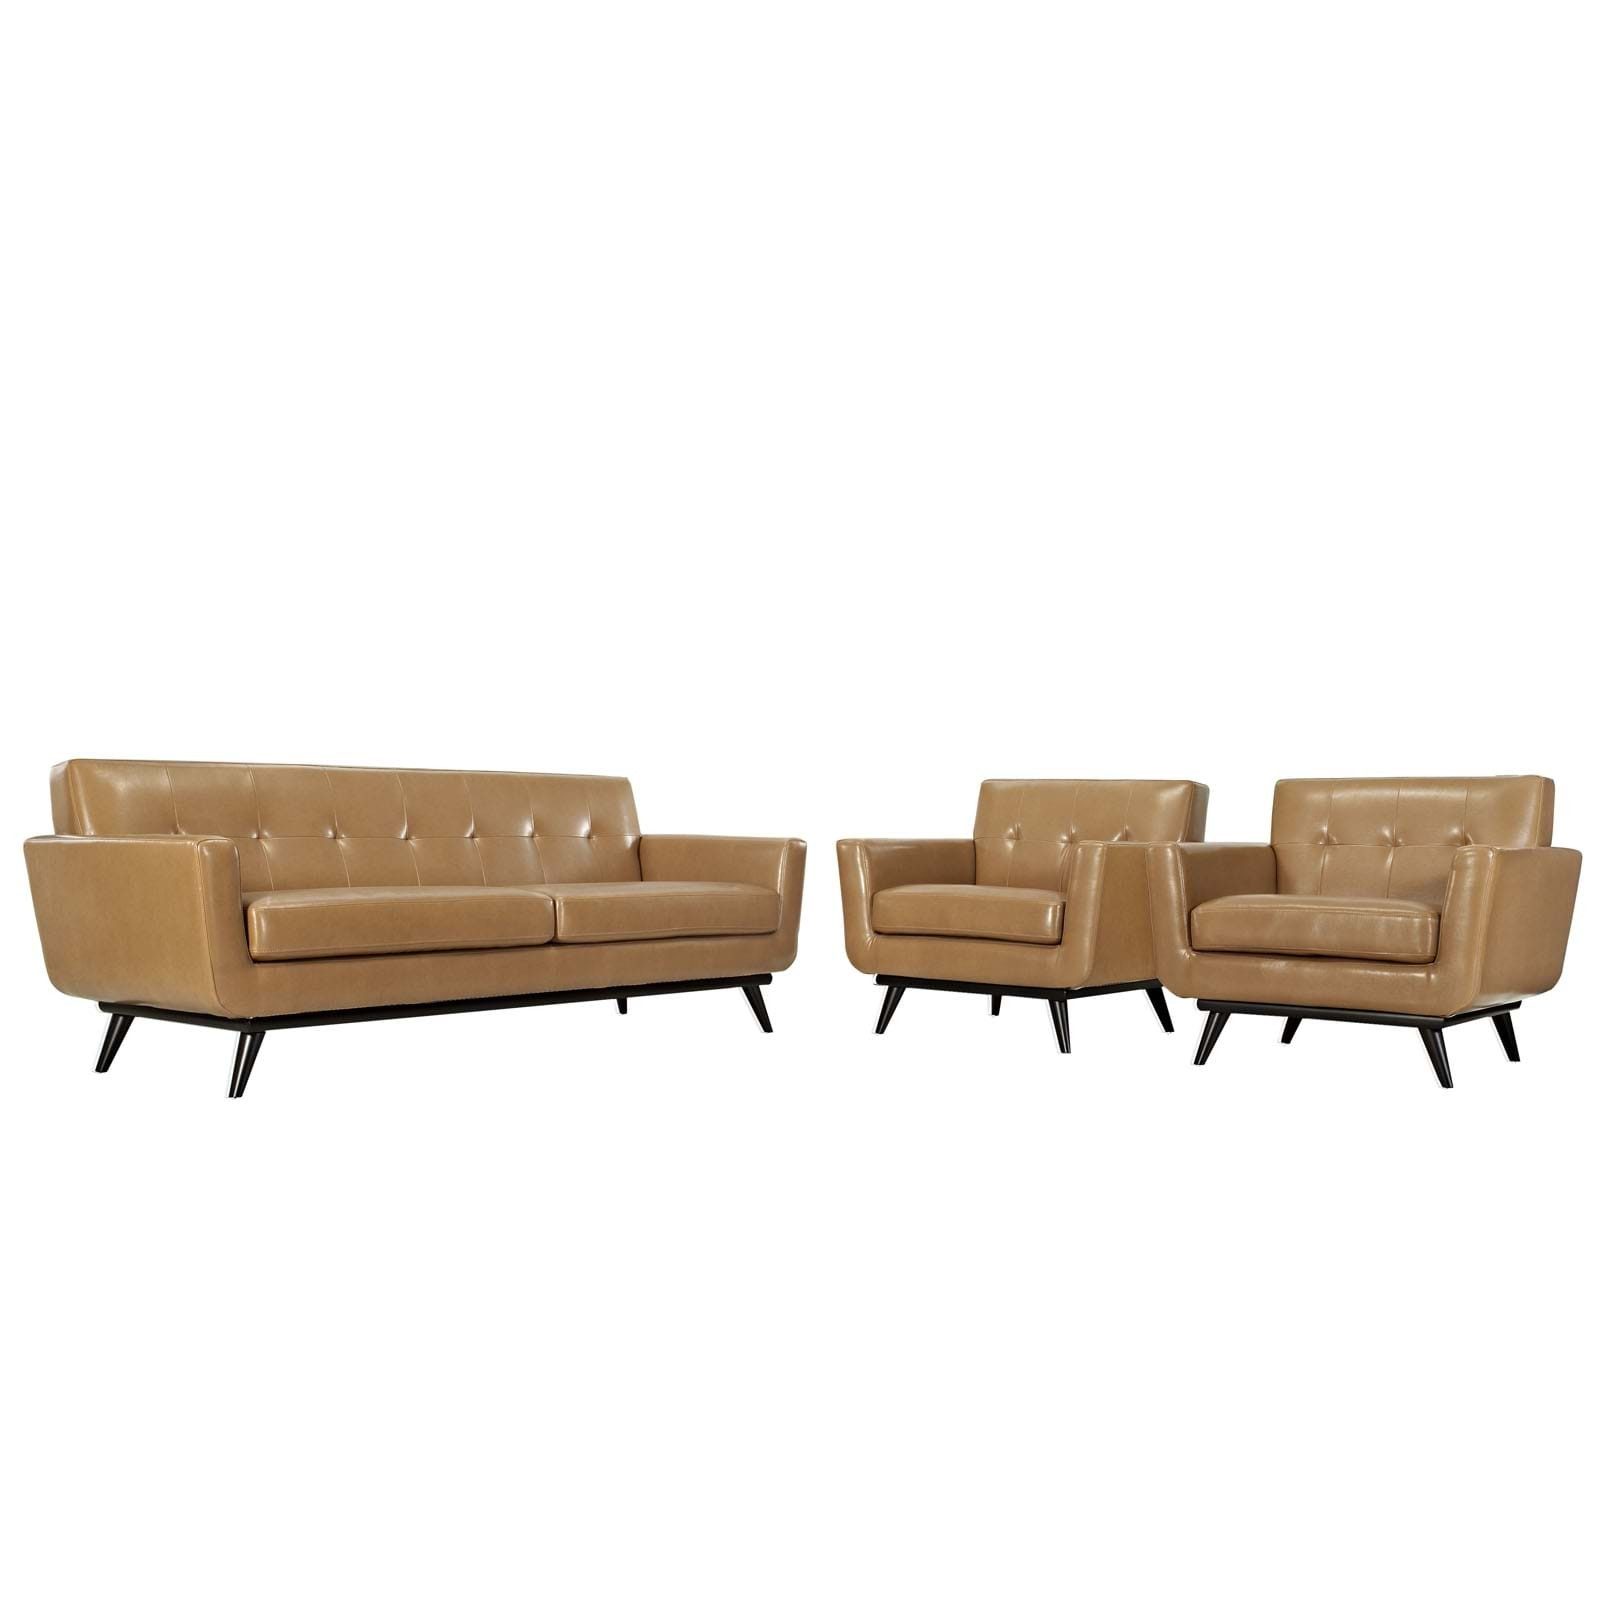 Engage Leather Living Room Set - 3 Piece in Tan